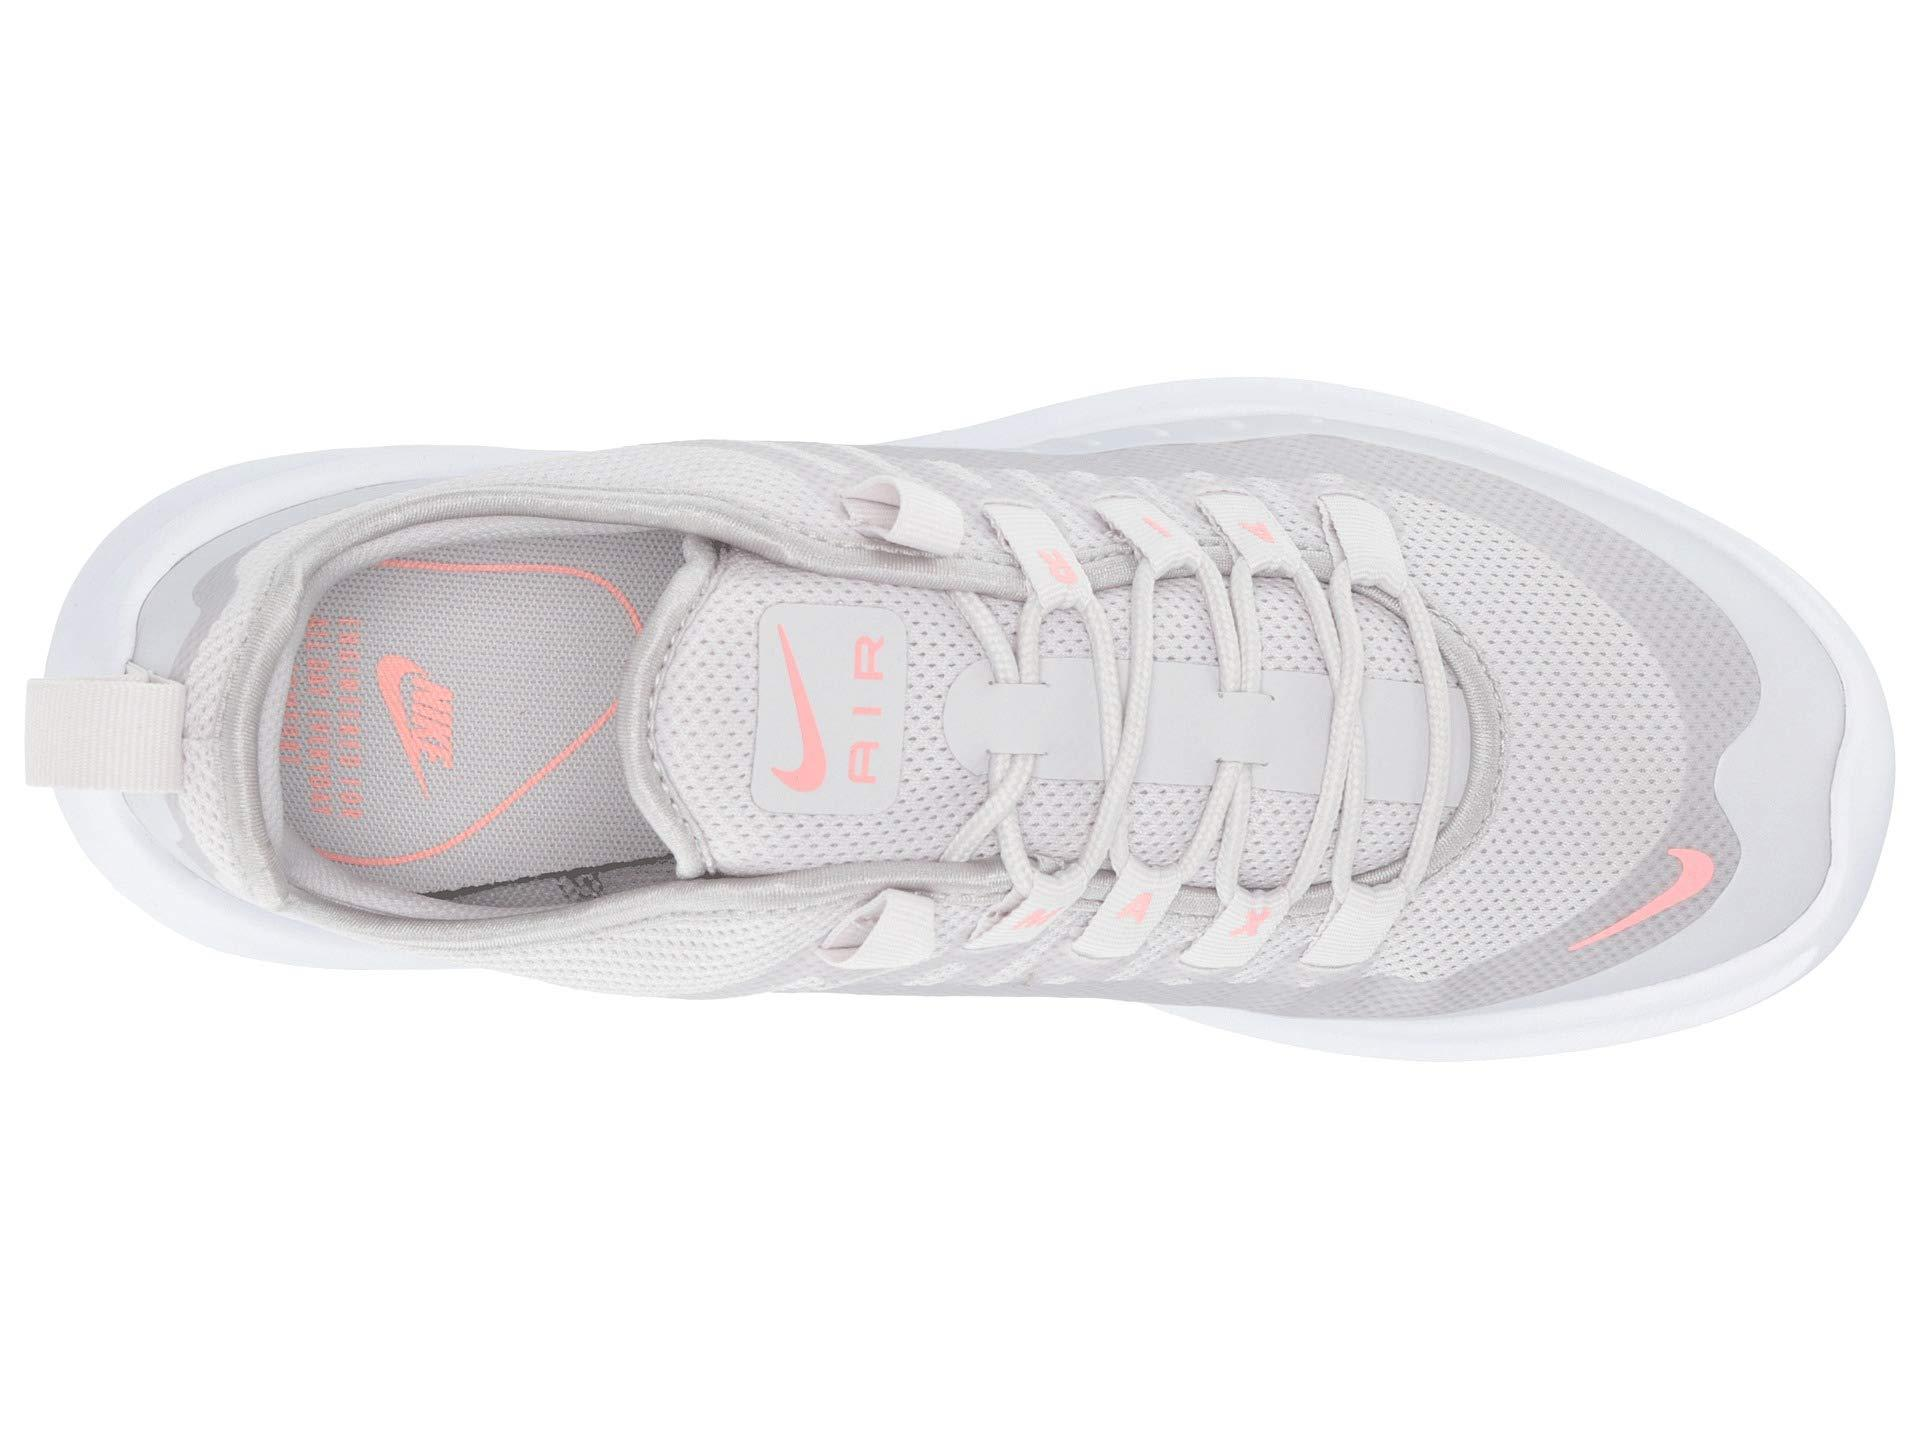 9e8acf5ee59157 Lyst - Nike Air Max Axis (white laser Orange hyper Pink) Women s ...